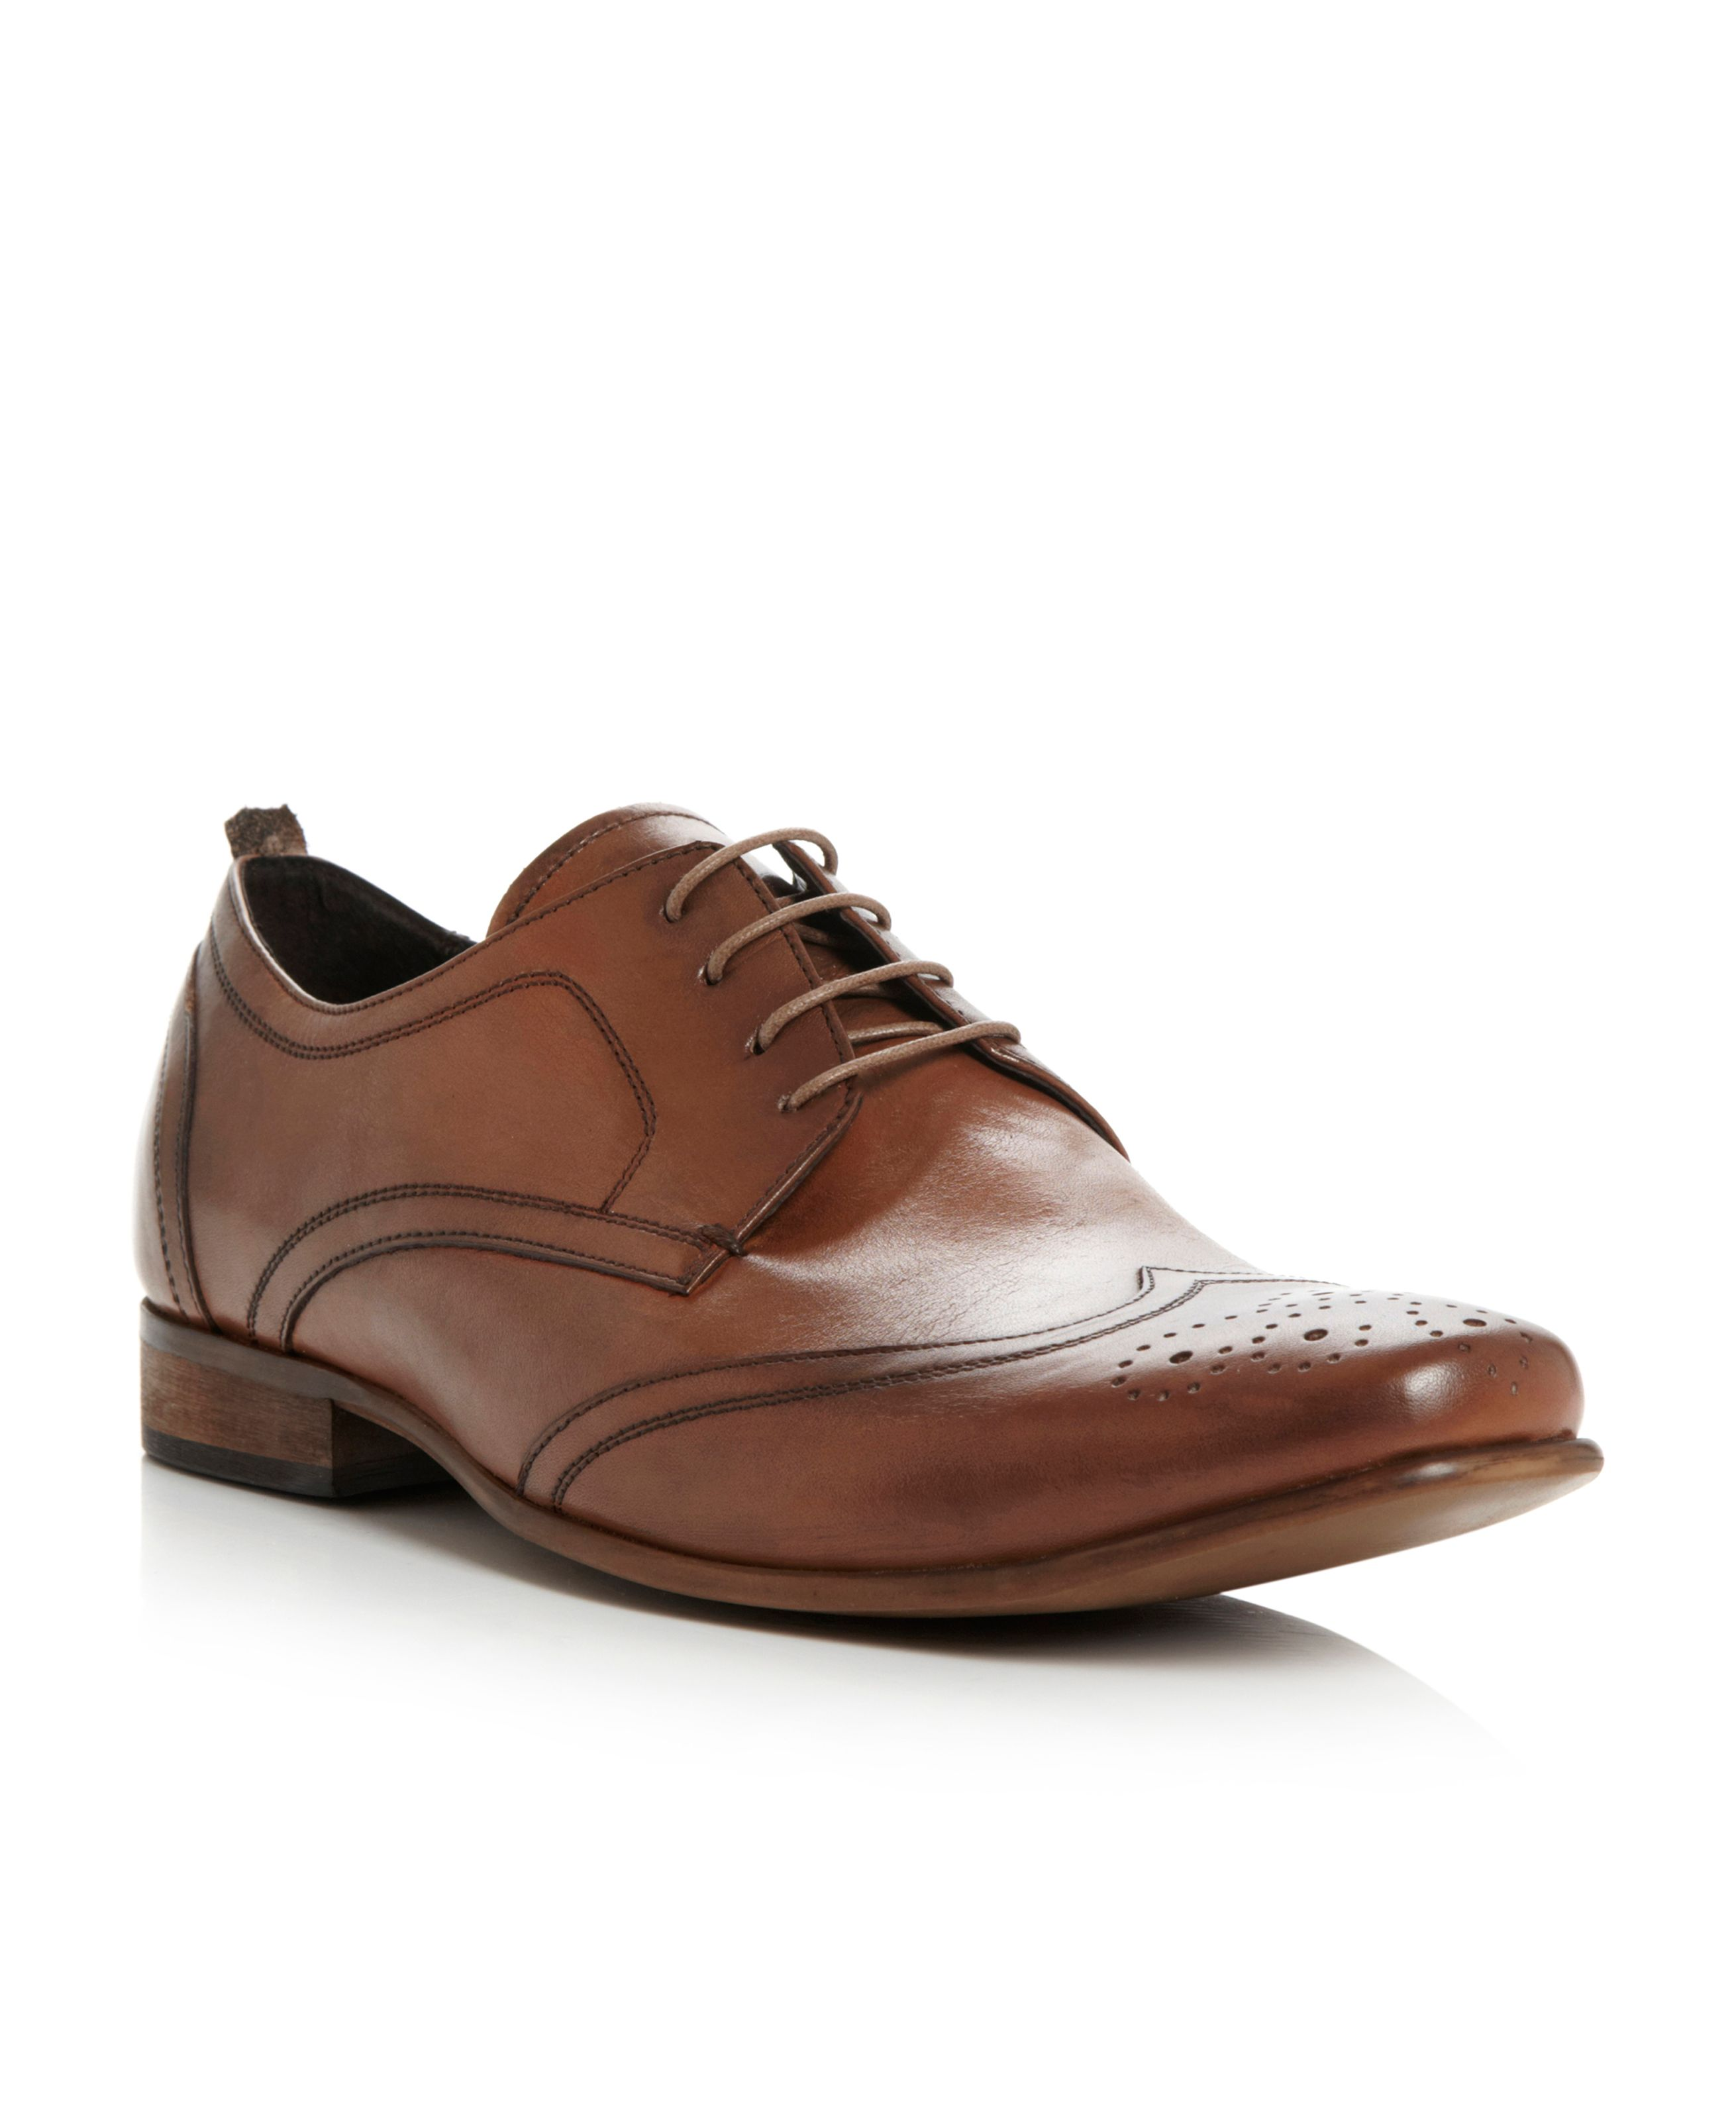 Arnold circus round toe lace up brogues